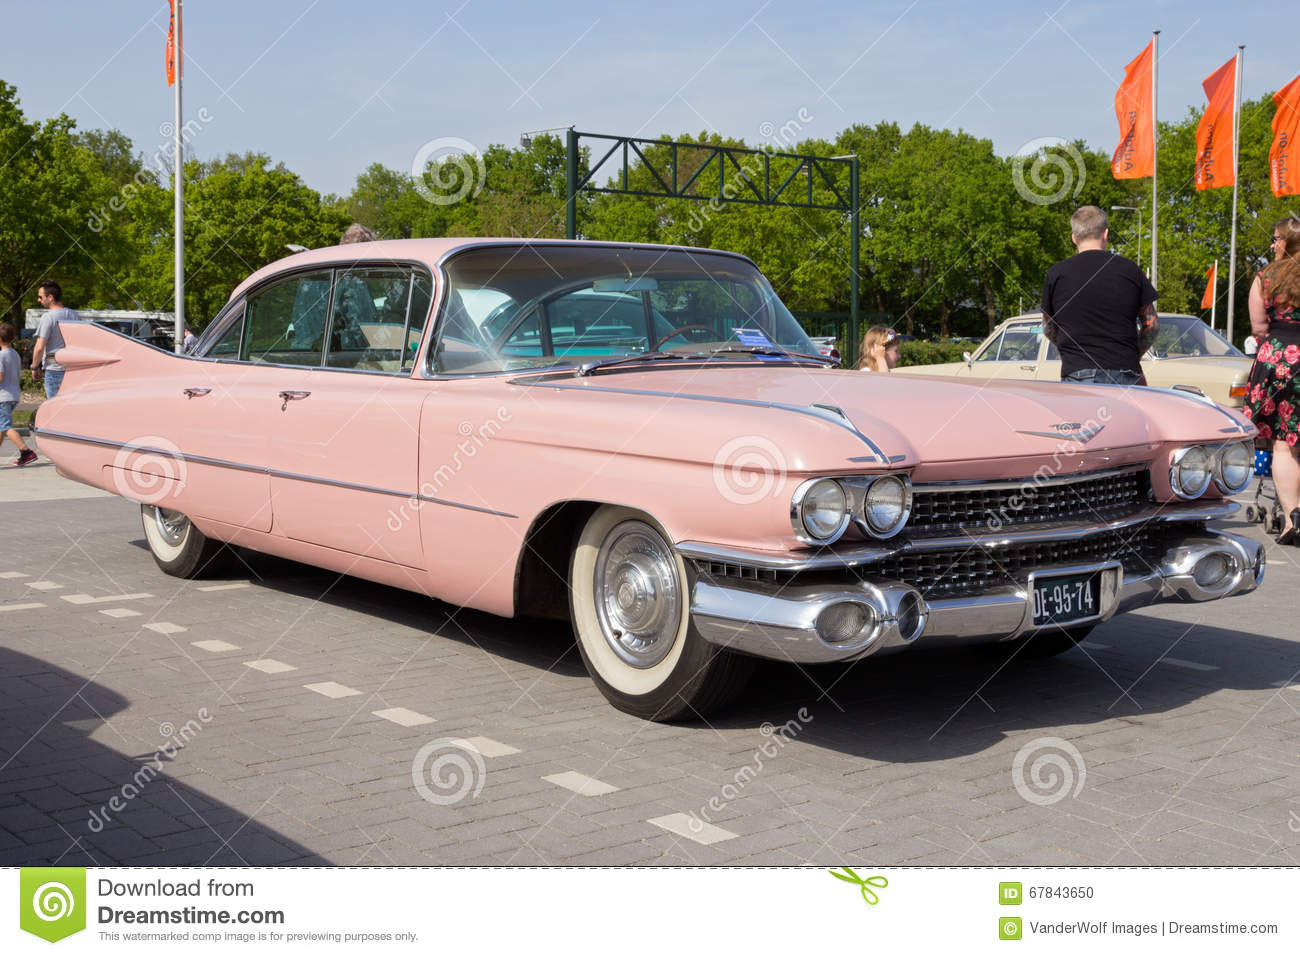 voiture 1959 de cadillac sedan de ville image ditorial image 67843650. Black Bedroom Furniture Sets. Home Design Ideas